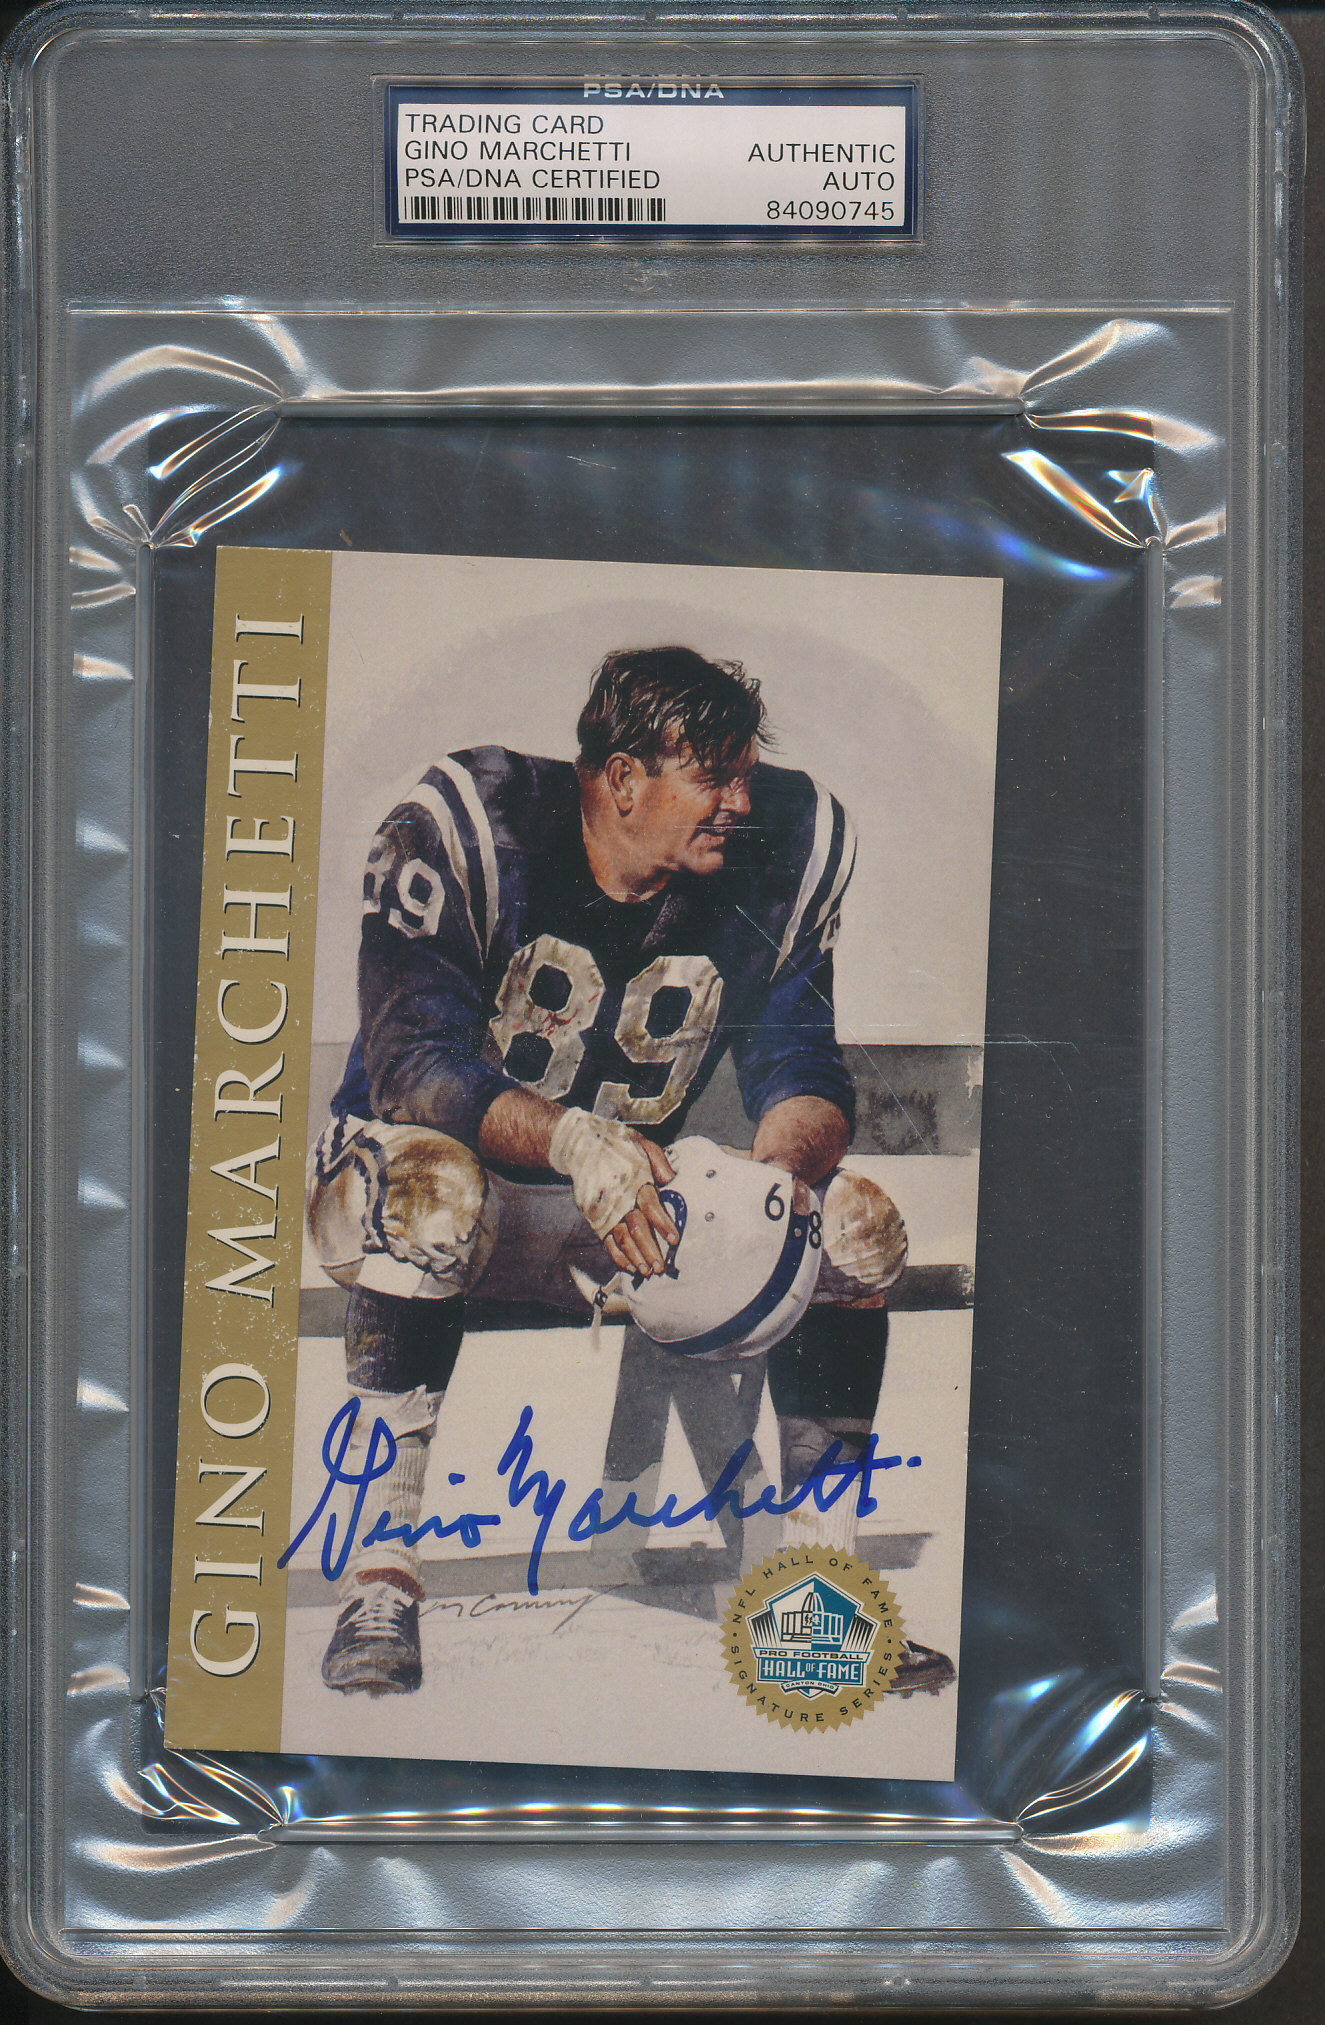 Details About Gino Marchetti Signed Trading Card Psadna Certified Authentic Auto 0745